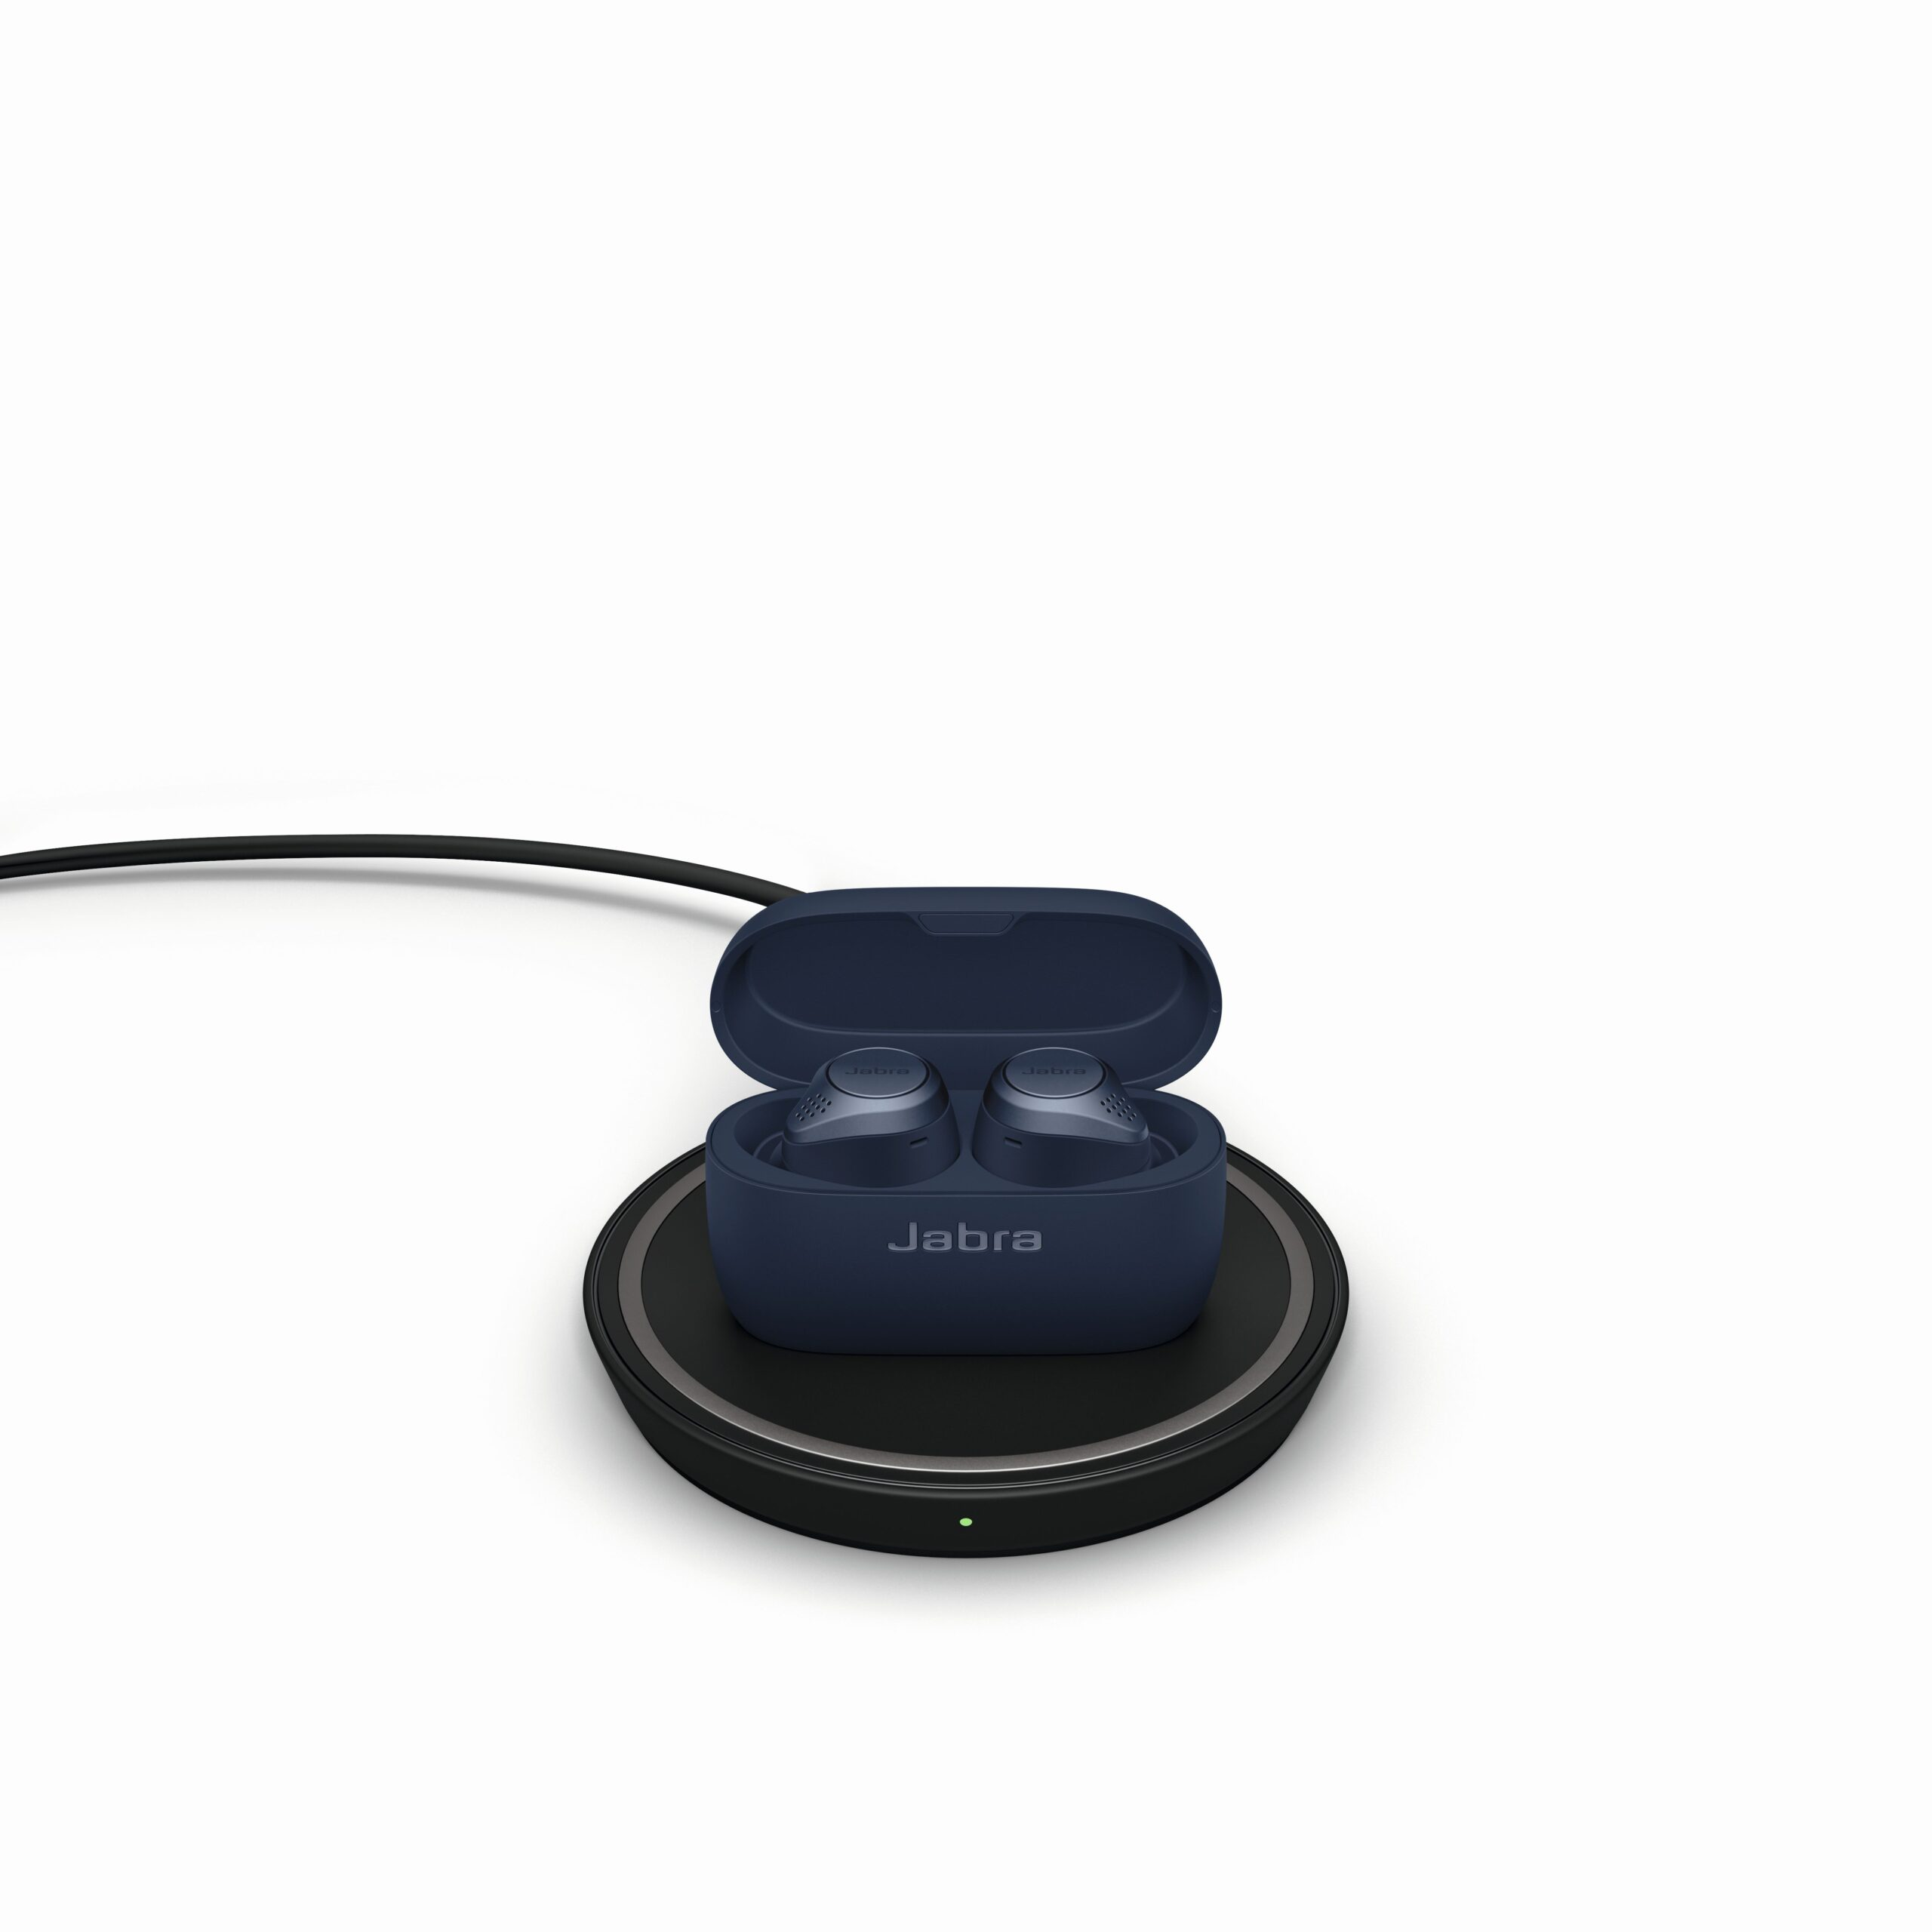 jabra elite 75t ricarica wireless